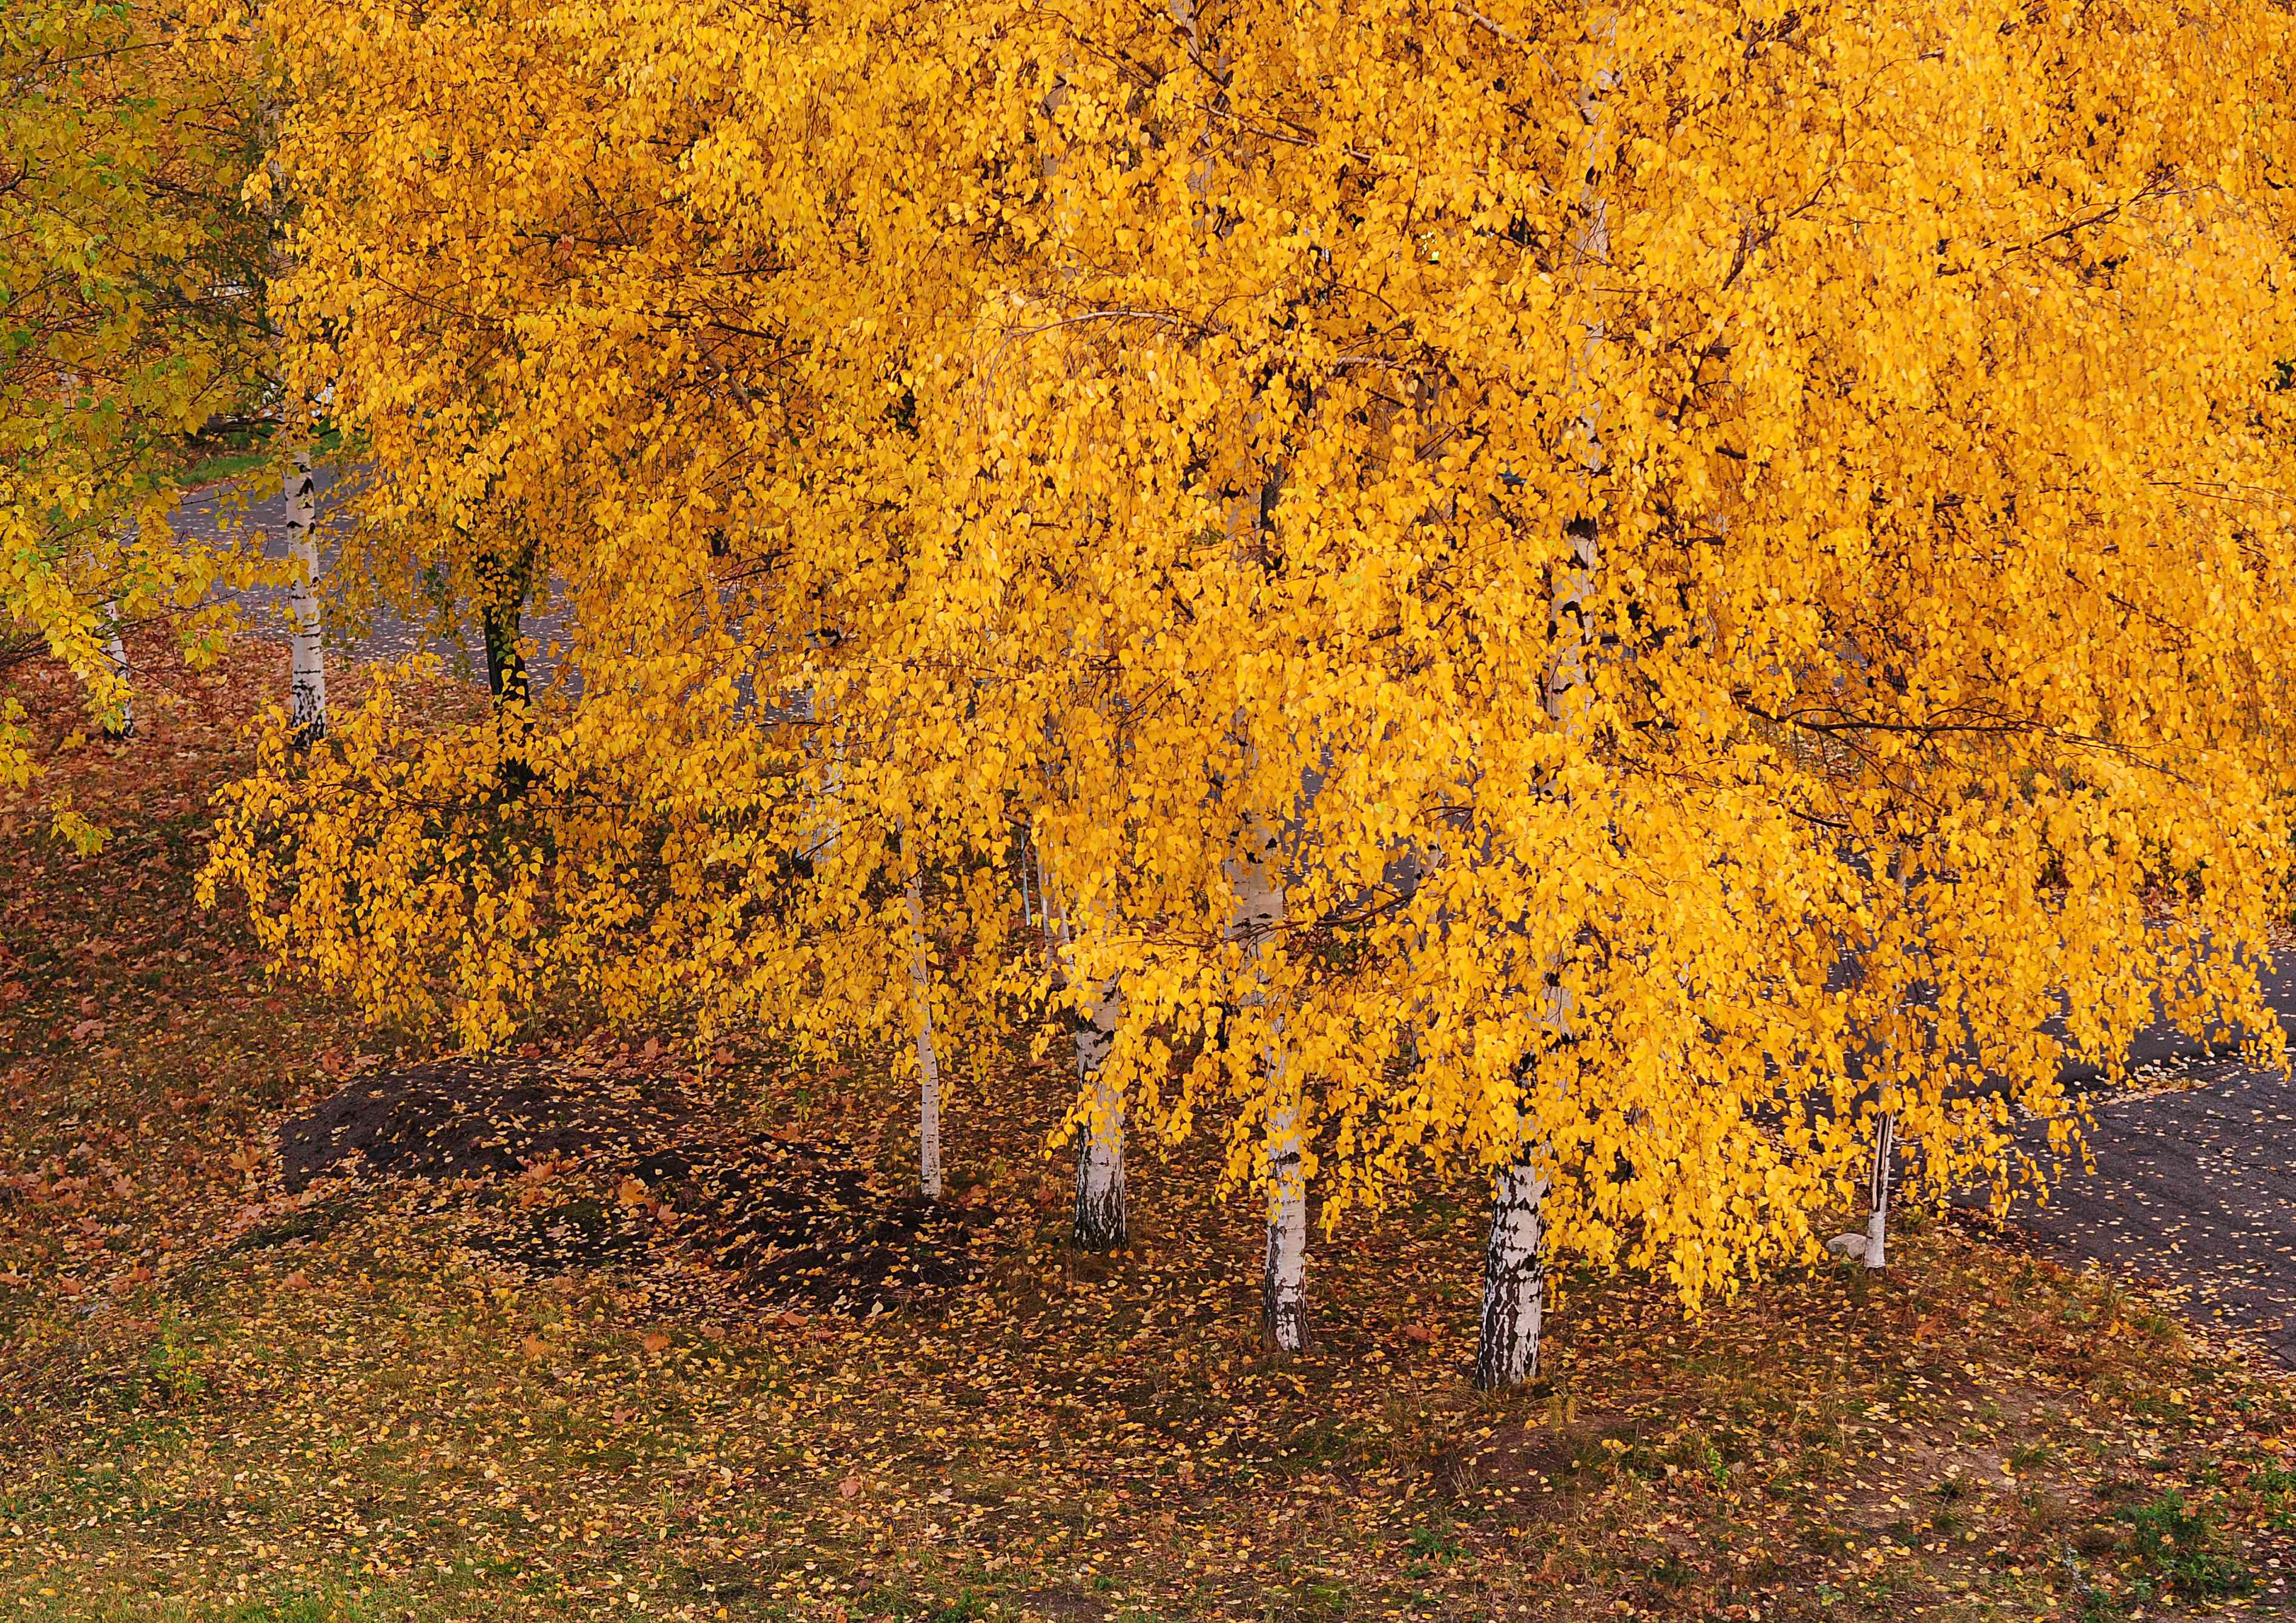 Silver birch trees with yellow leaves with leaves on ground